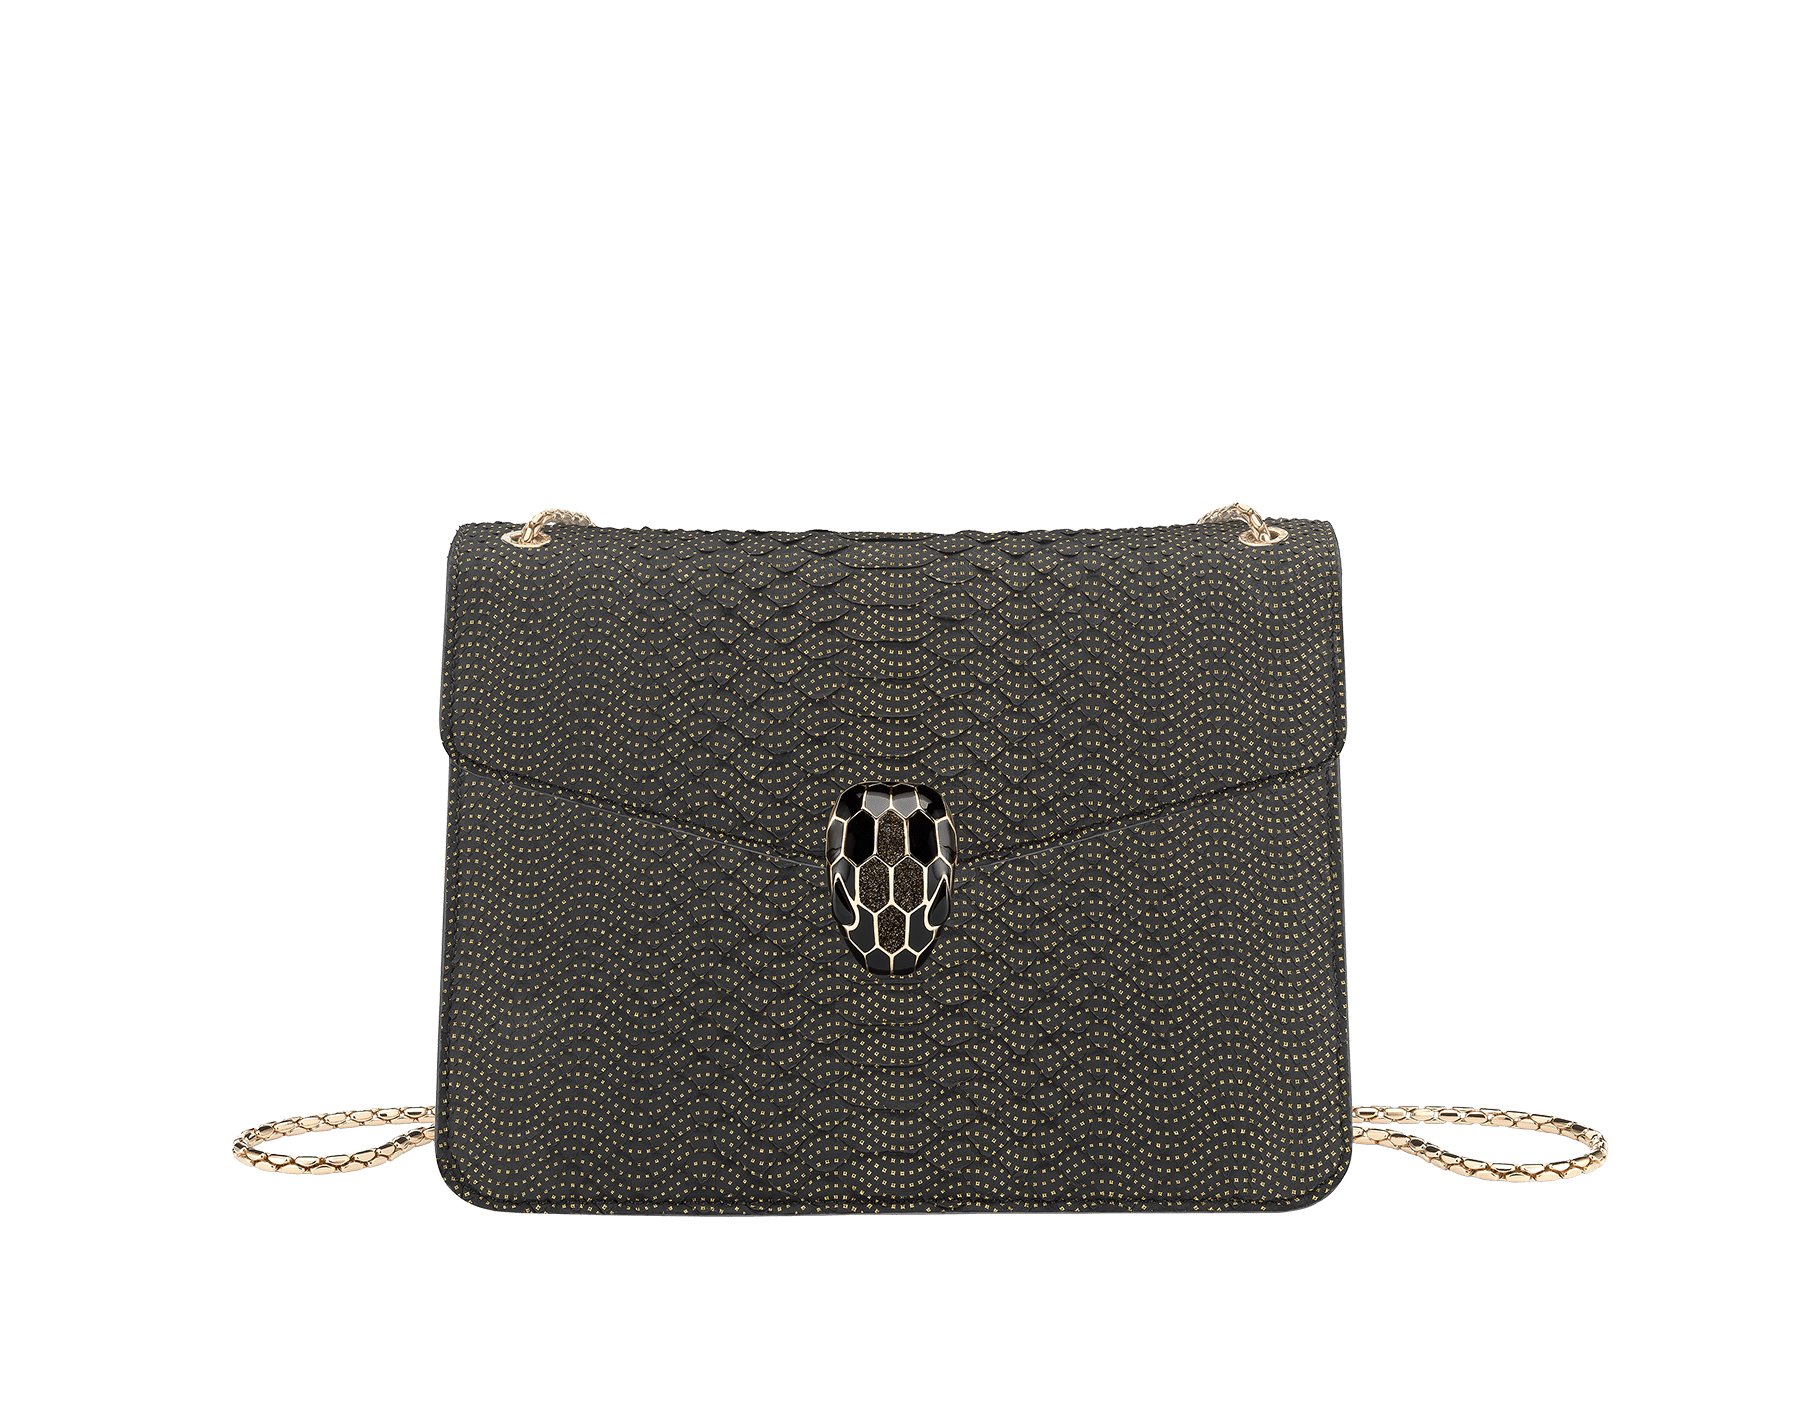 """""""Serpenti Forever"""" crossbody bag in black Fil Coupé python skin. Iconic snakehead closure in light rose gold plated brass enriched with glitter bronze and shiny black enamel and green malachite eyes 287322 image 1"""